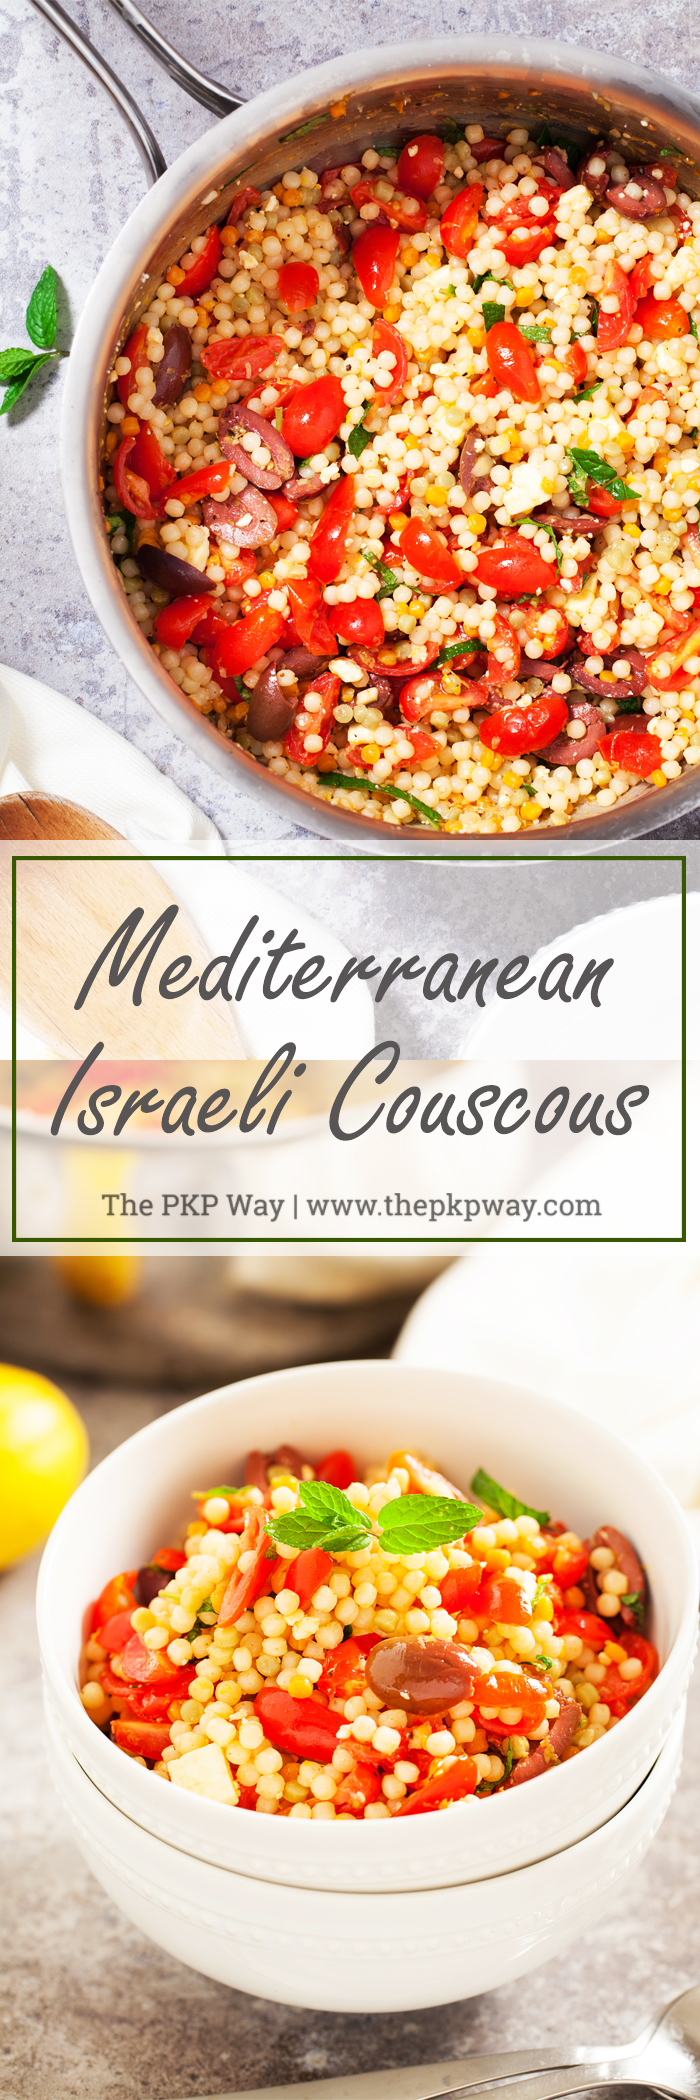 This Mediterranean Israeli Couscous is perfect as an accompaniment to any Mediterranean-inspired meal or on its own in a giant bowl!